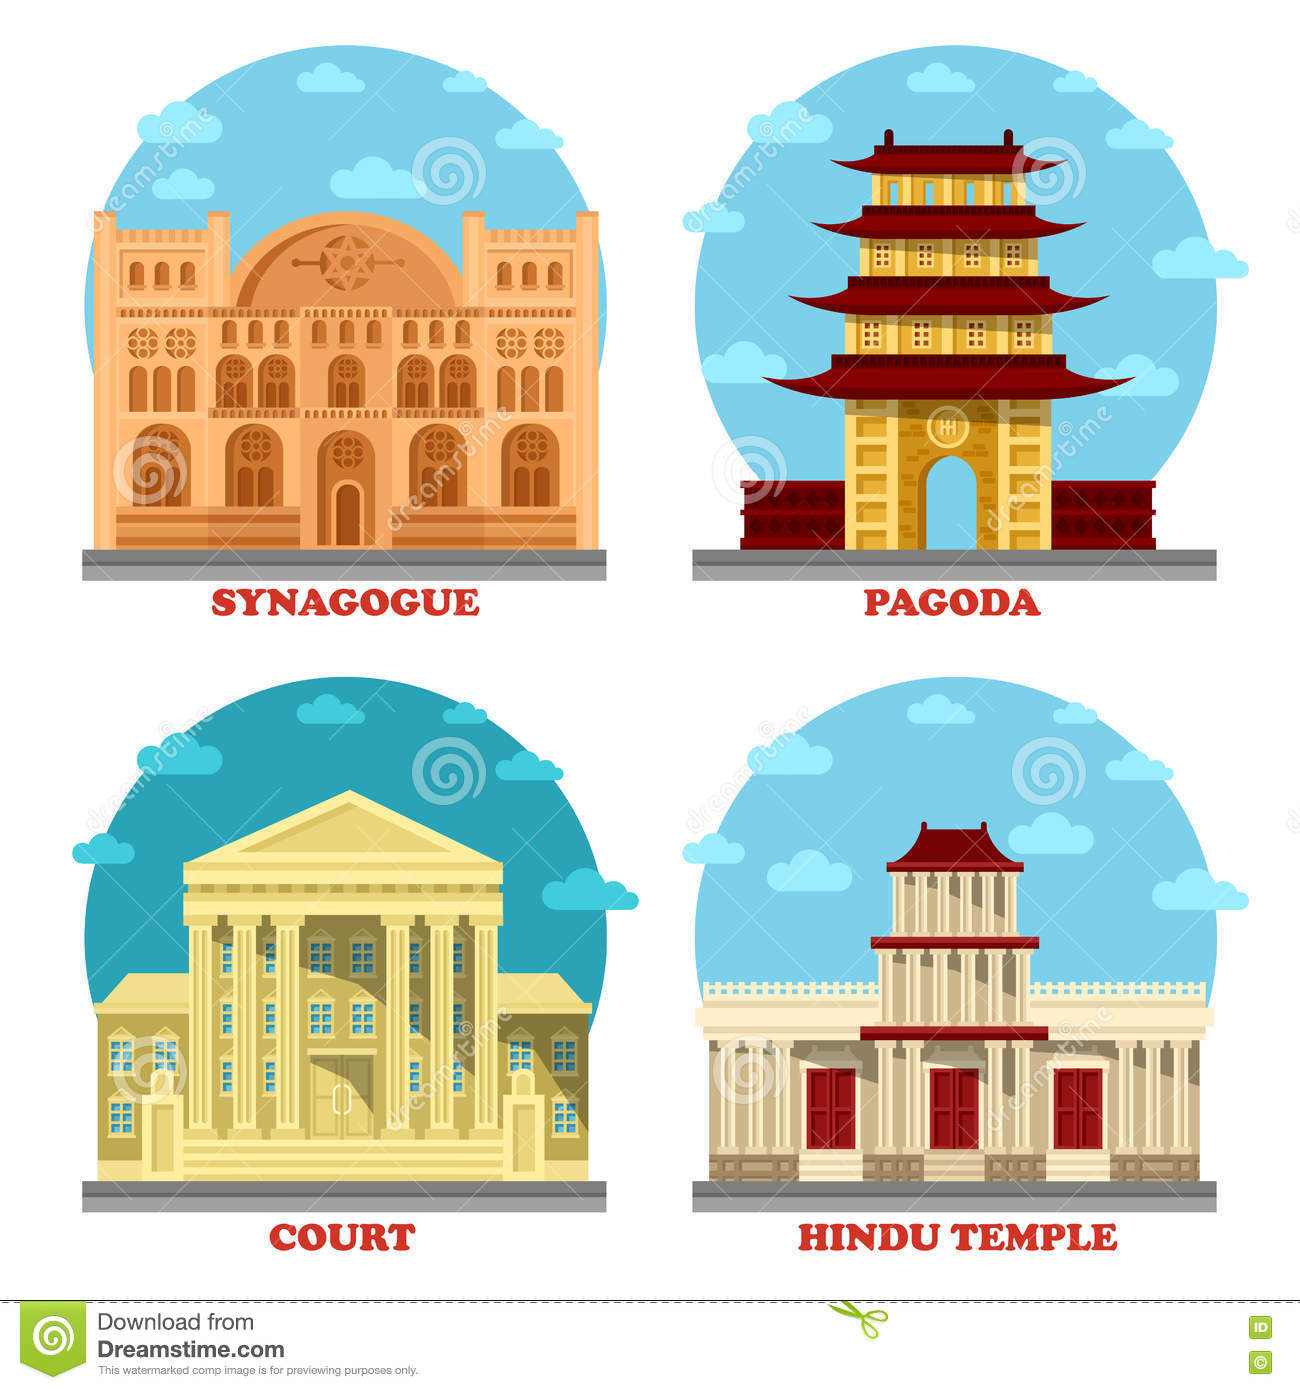 Court of law and religion temple pagoda stock vector court of law and religion temple pagoda biocorpaavc Gallery